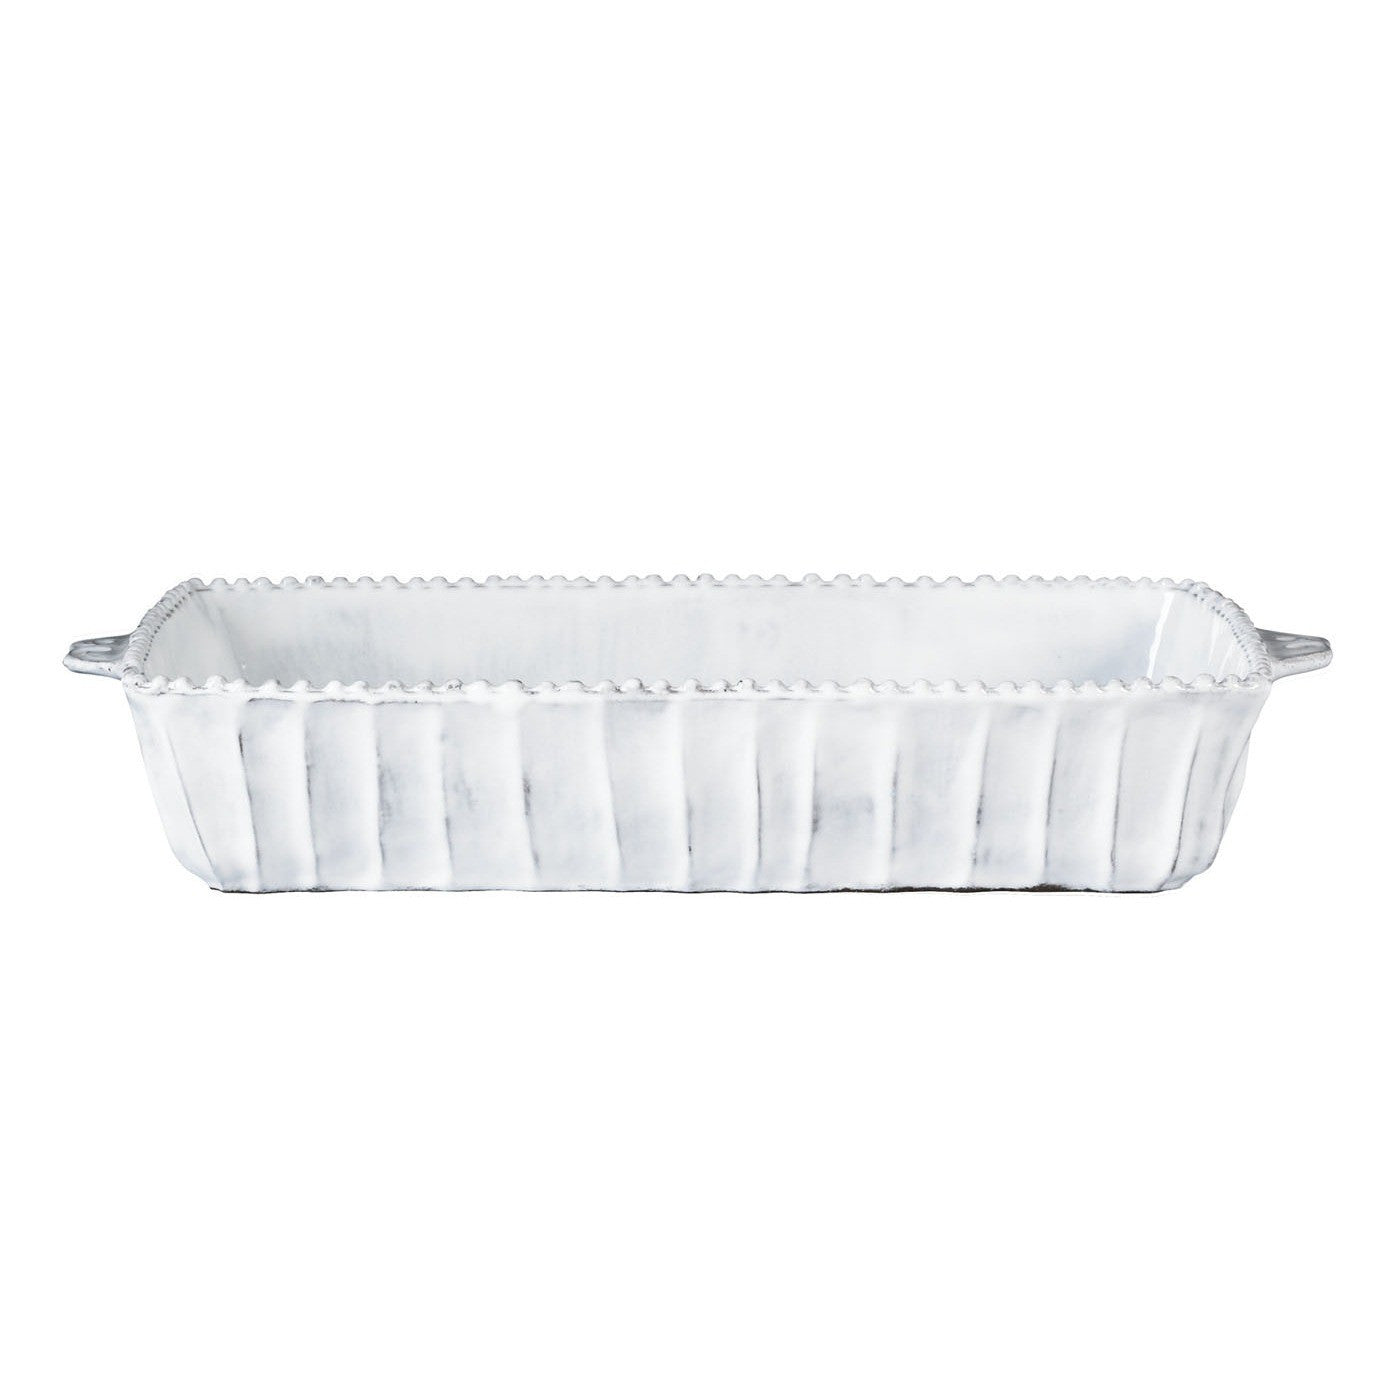 Incanto Stripe Medium Rectangular Baking Dish , tableware - Vietri, Pezzo Bello